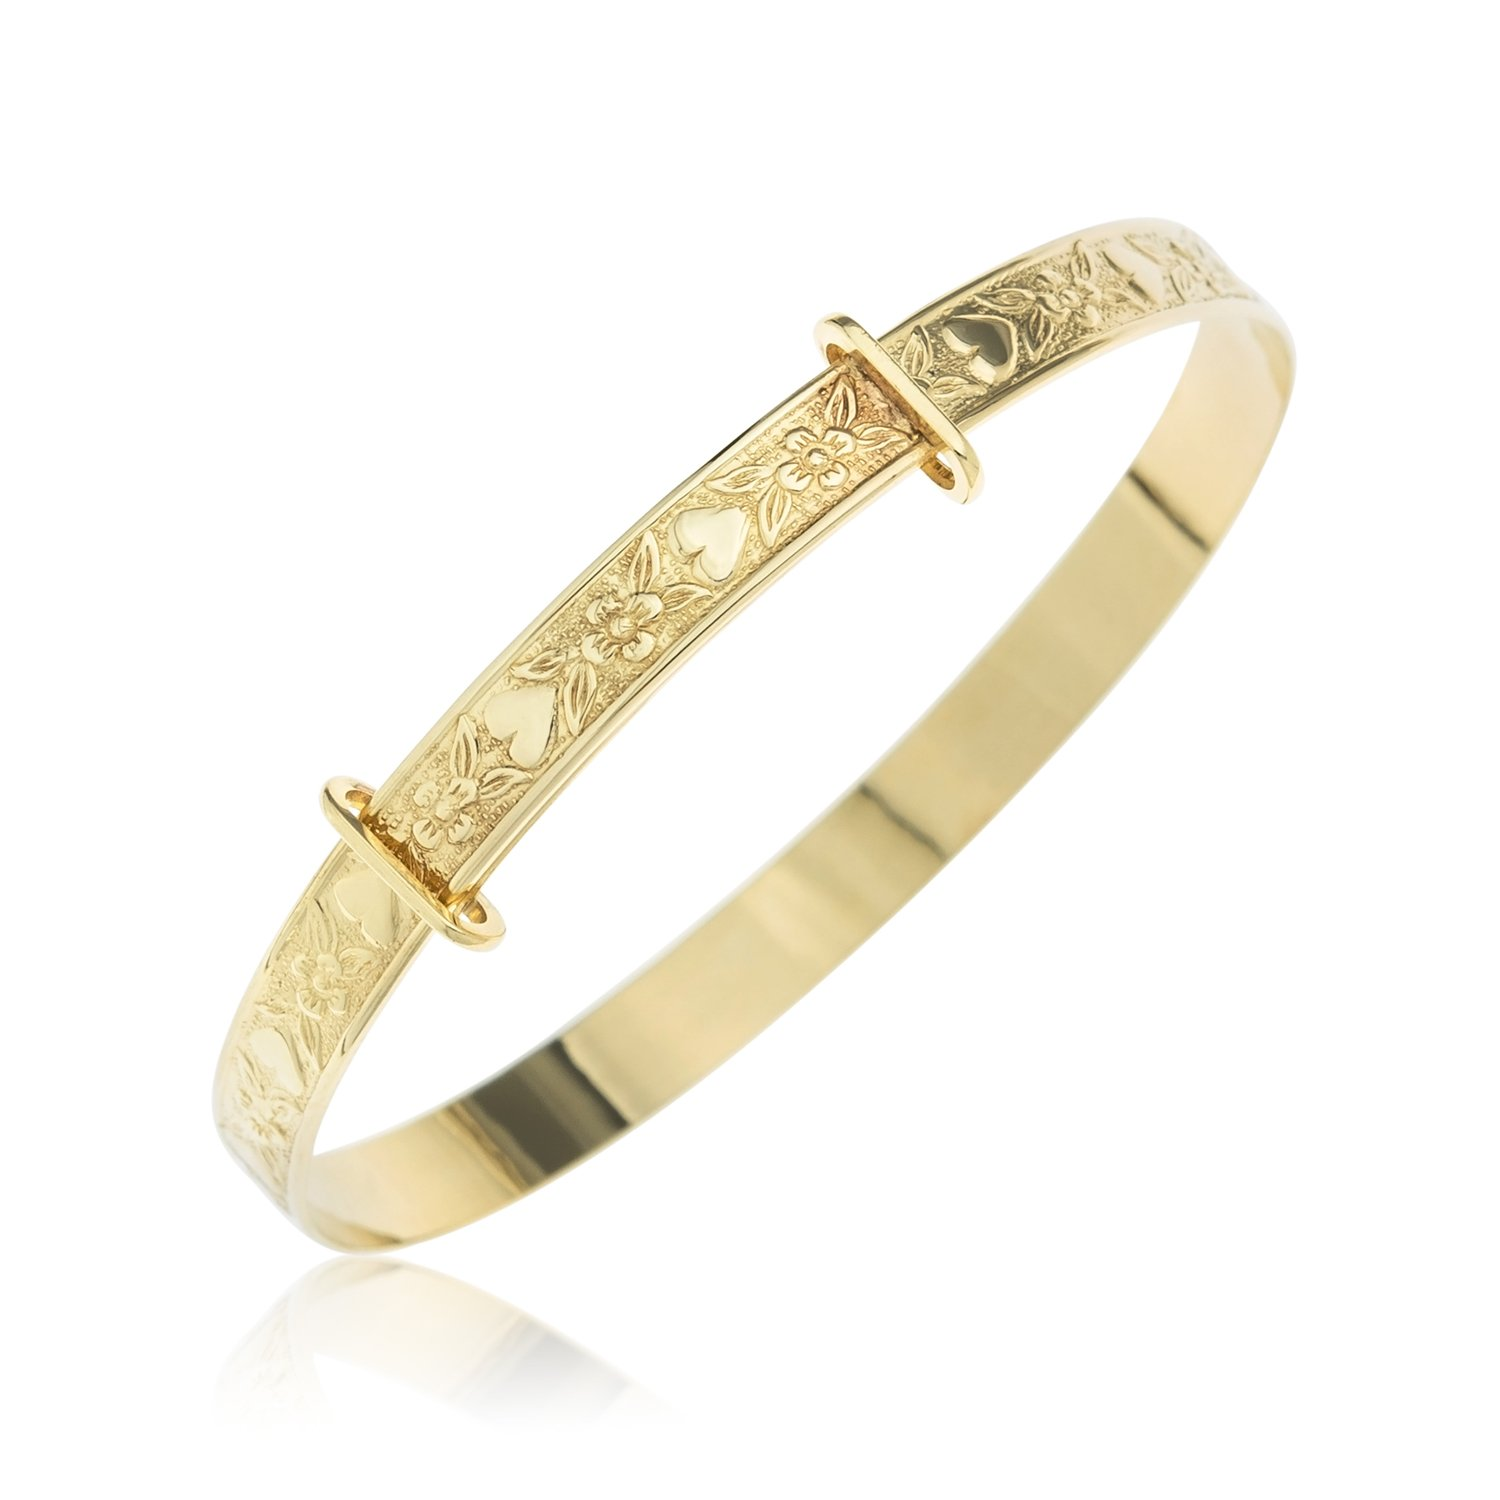 jewellers fields full ie bracelet bangle size baby bangles gold